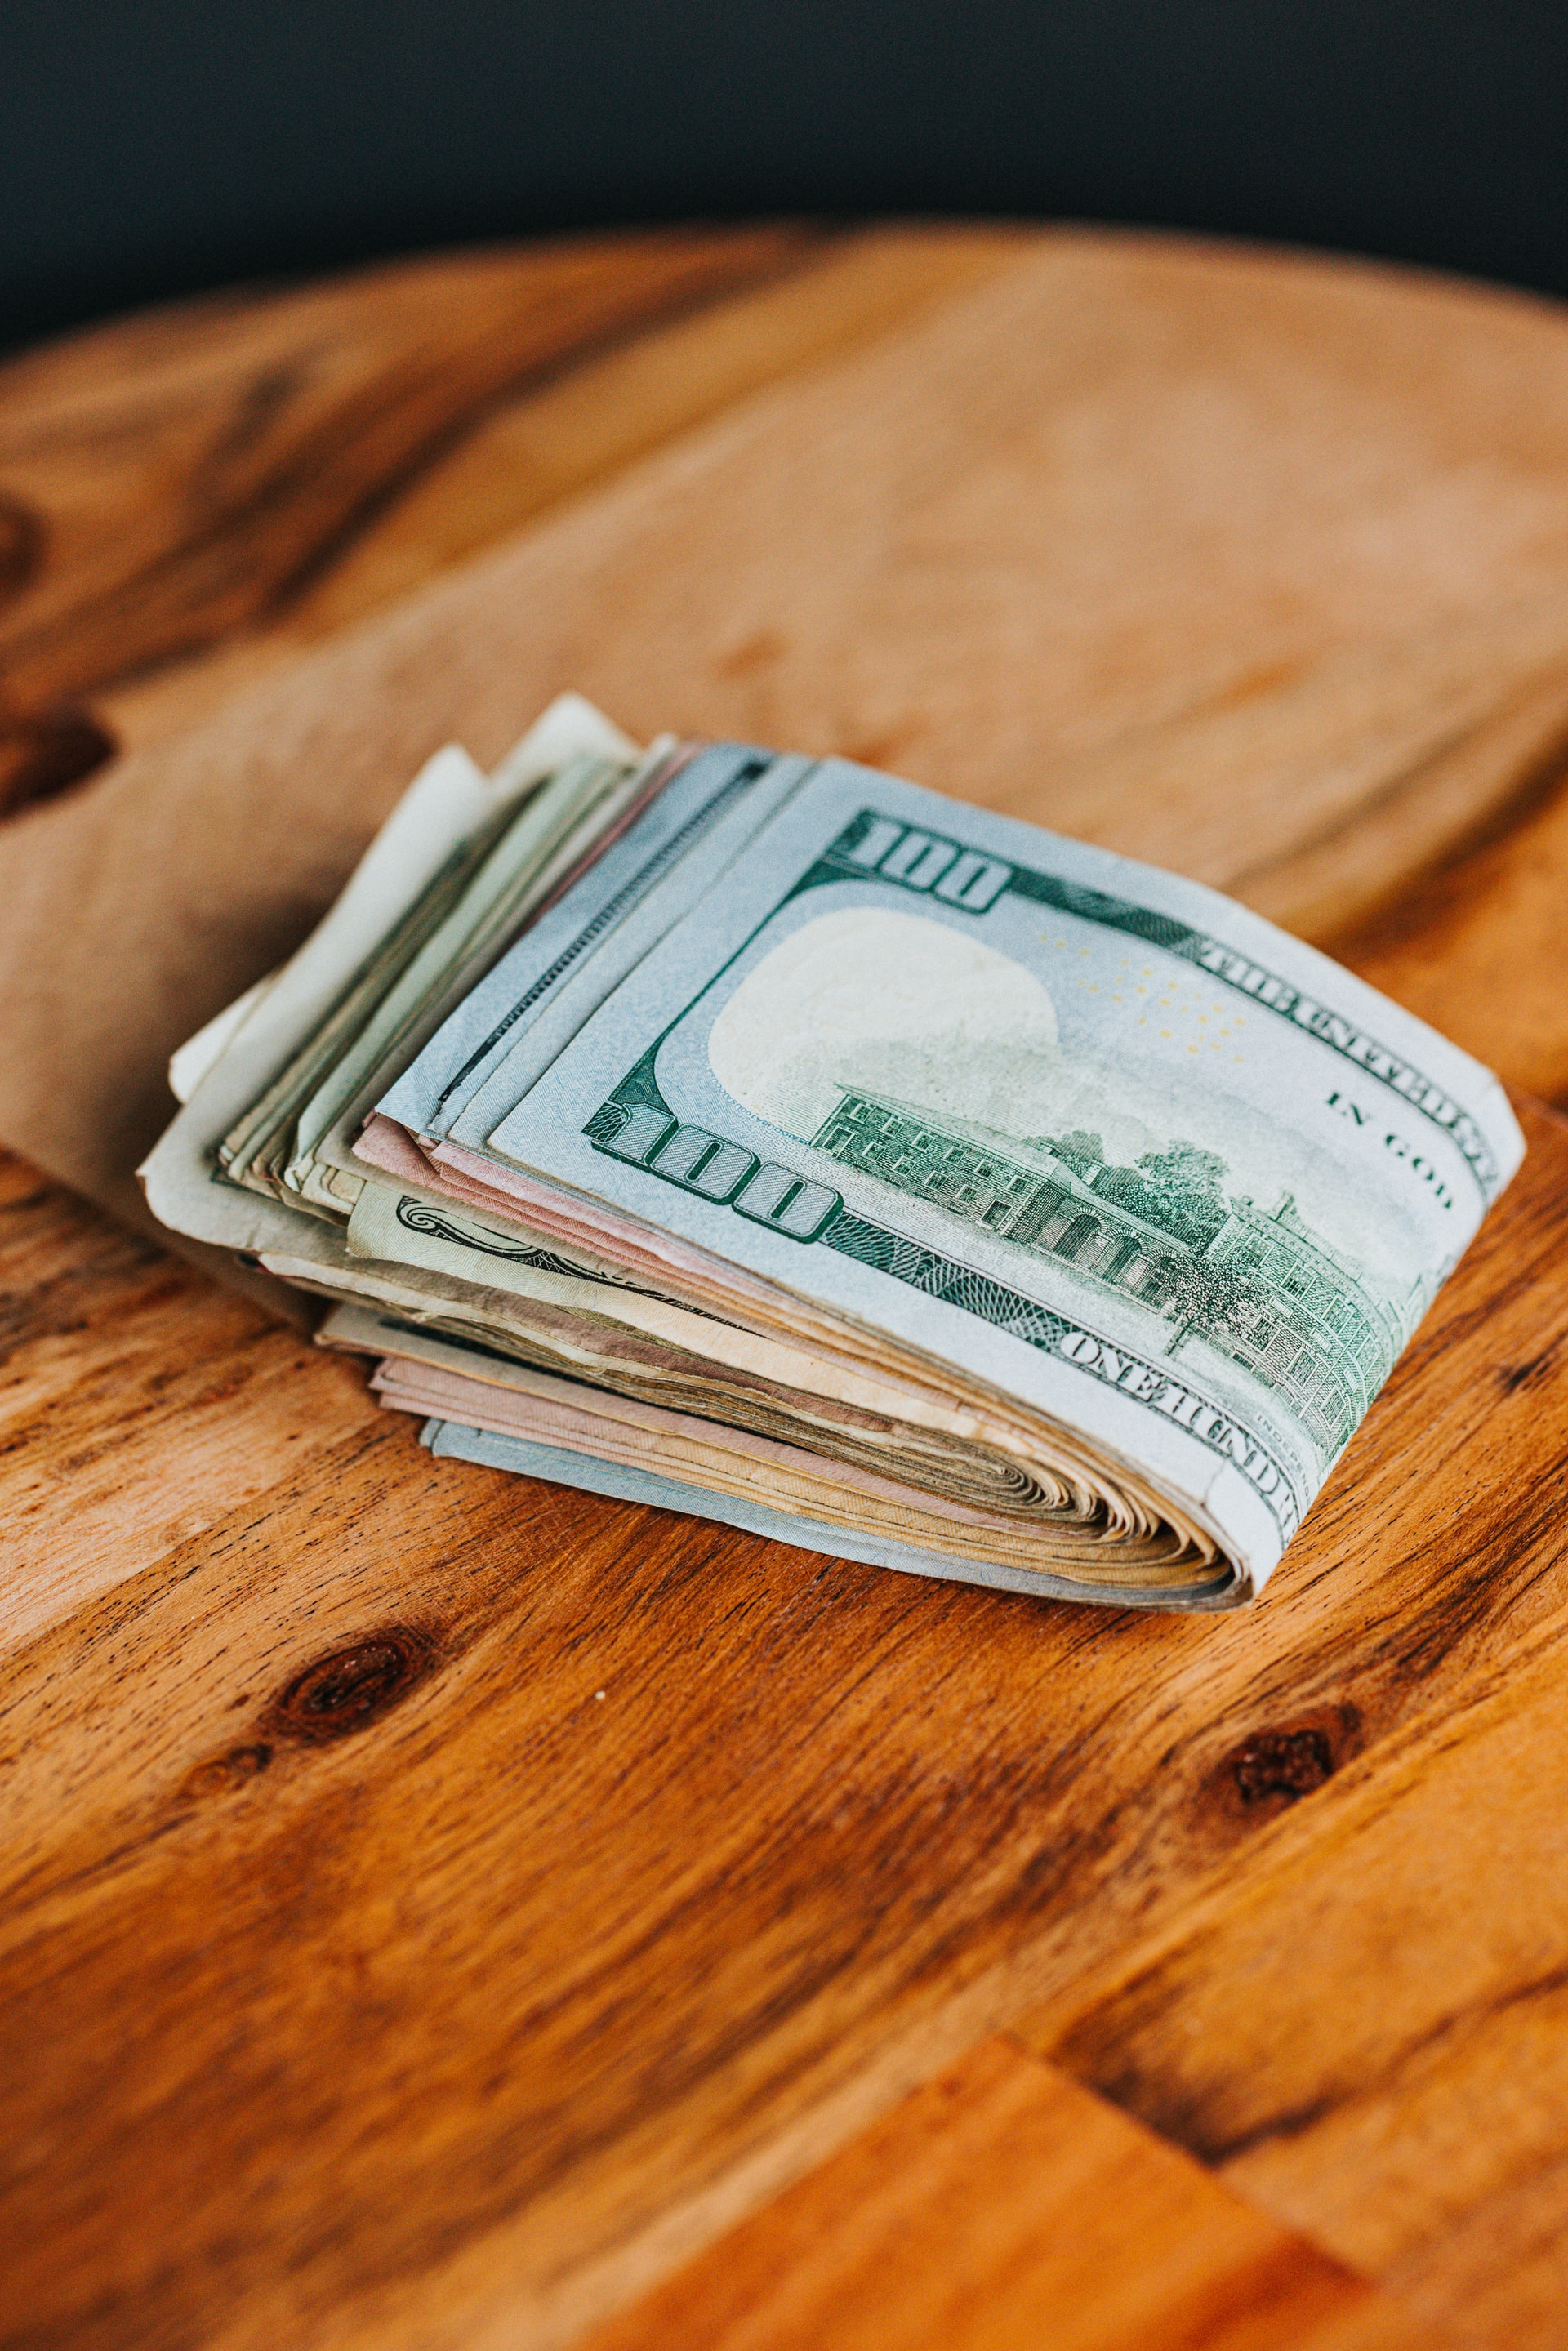 Small Business Payments Spotlight: Highlights Key Trends to Help Small Businesses Thrive